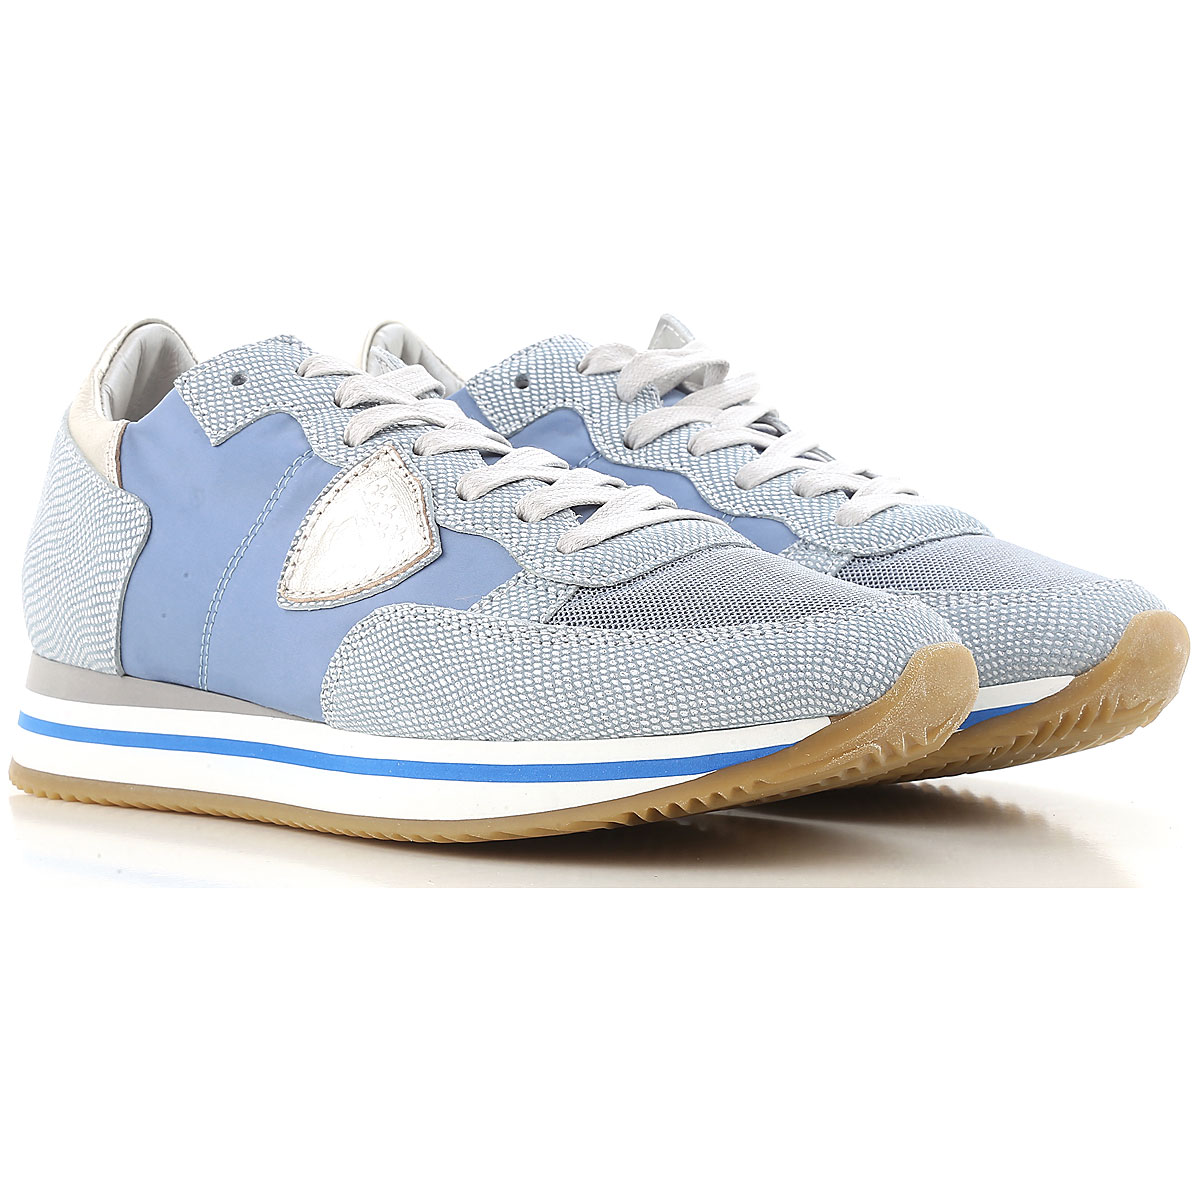 Philippe Model Sneakers for Women On Sale in Outlet, Light Blue, Fabric, 2019, 5 7